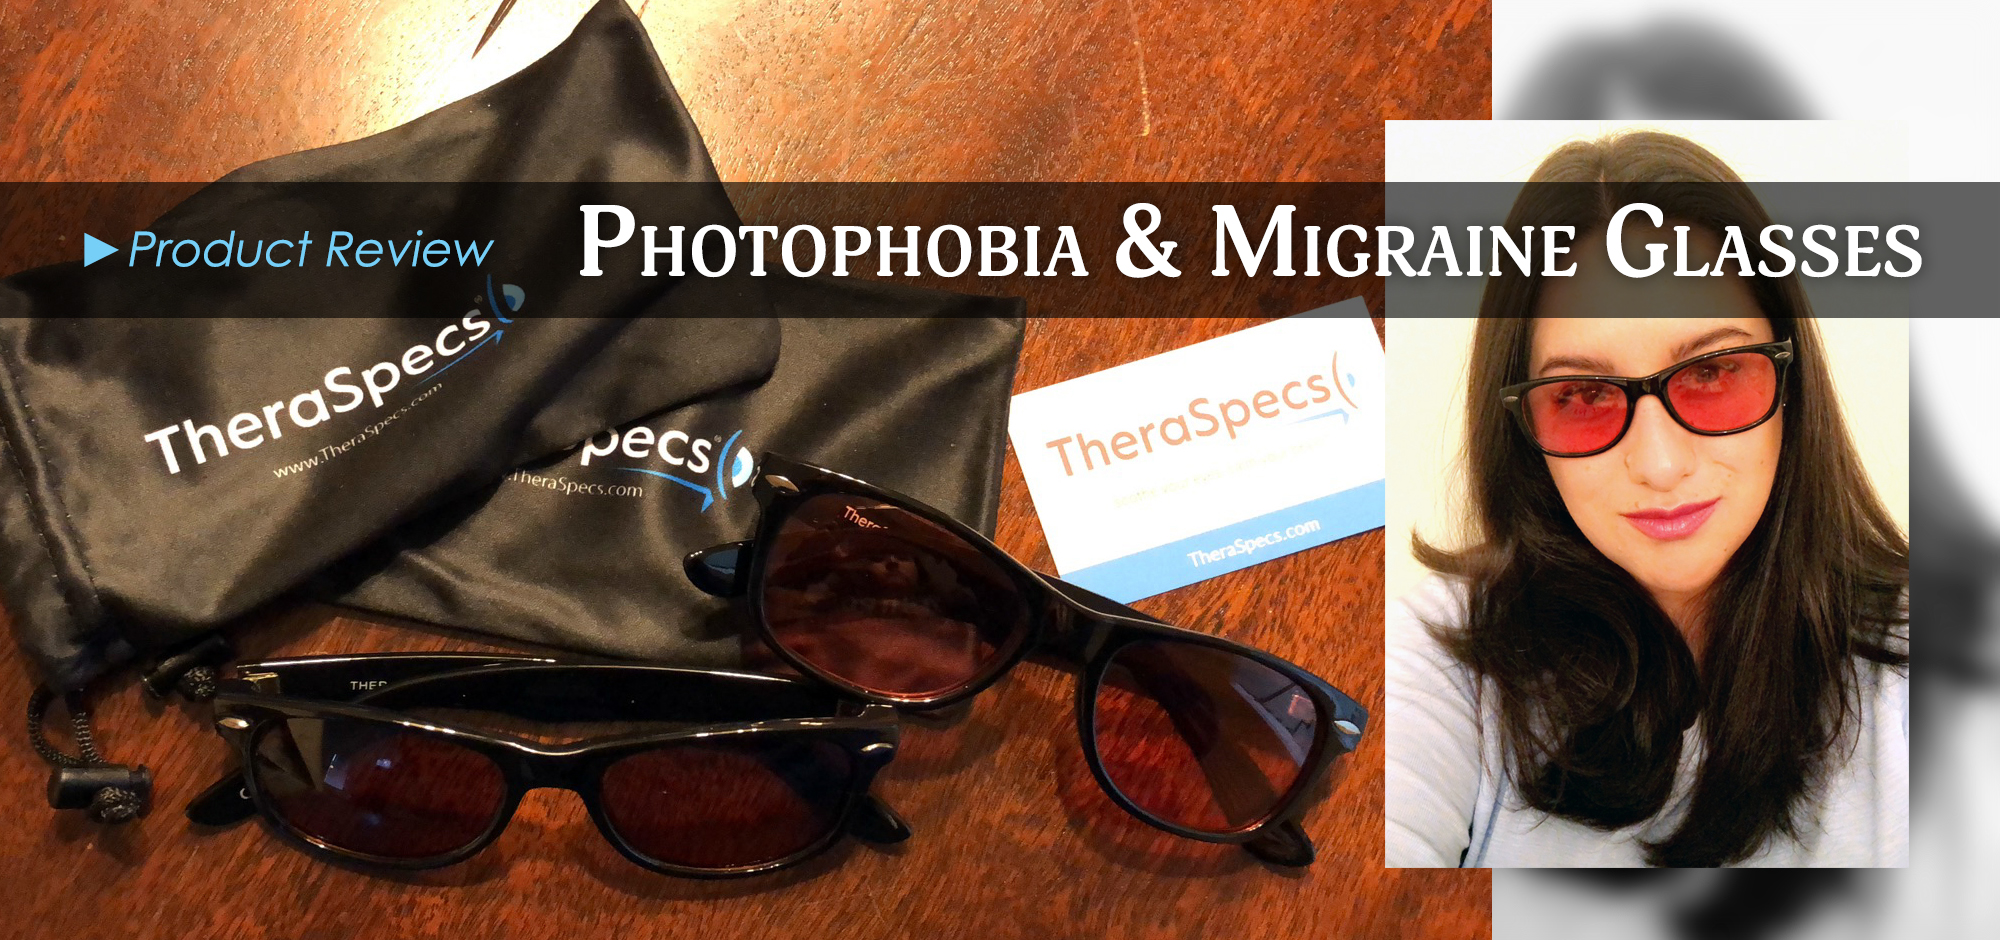 a8c1a0e1f0 Photophobia and Migraine Glasses  Product Review